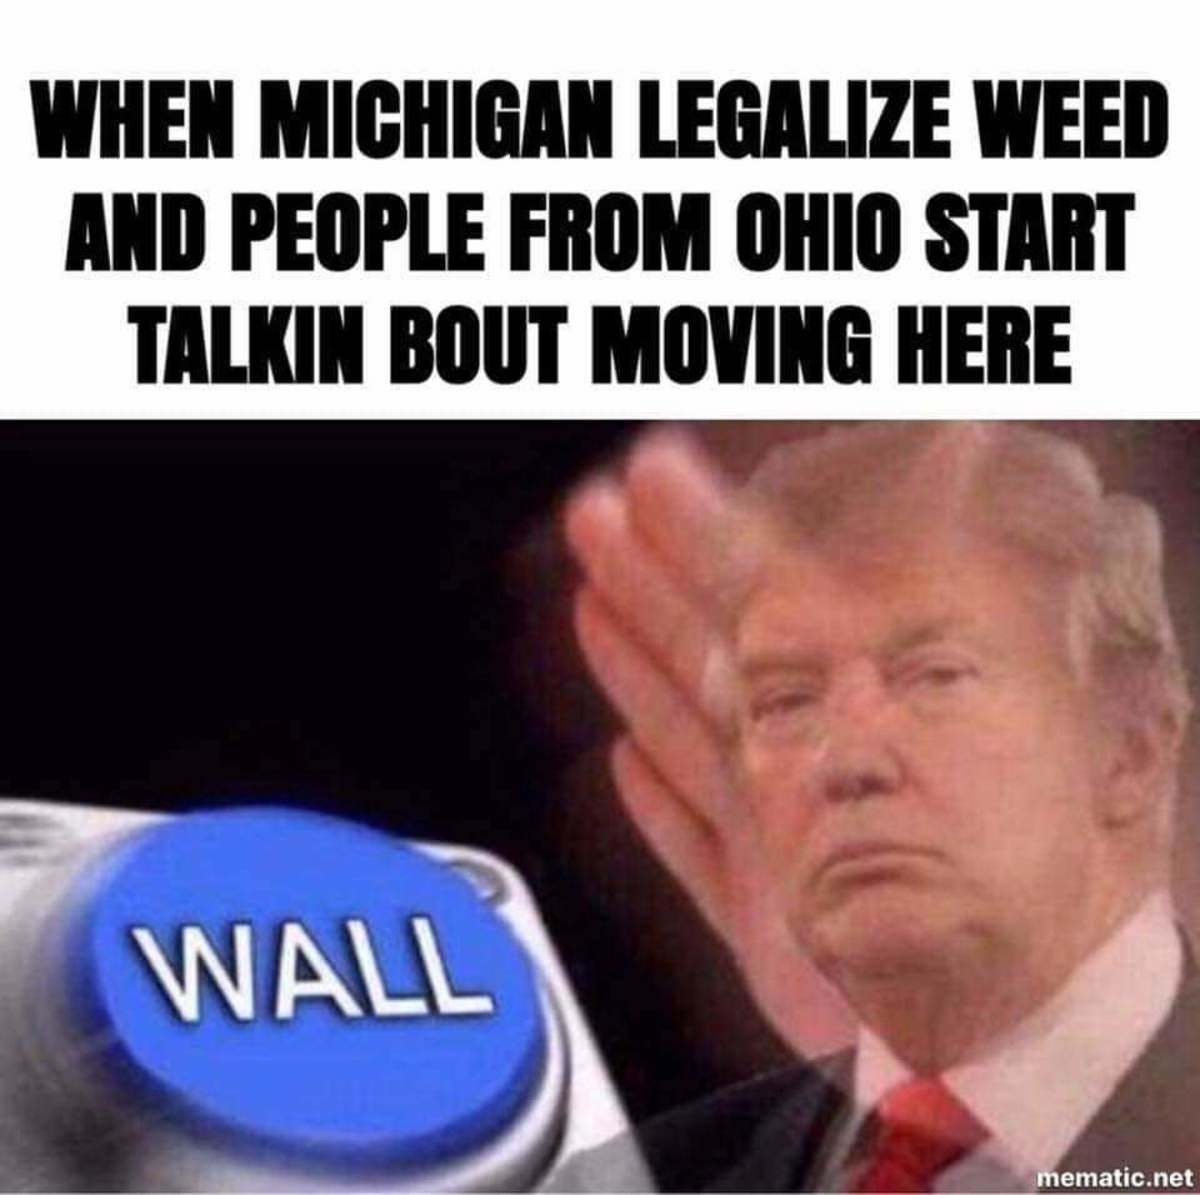 Hey I live in Michigan. .. I'm not big into Michigan(as on Ohioan), and I'm not big into weed. But I expect that a couple of friends and I may take a trip a couple minutes north for fun a